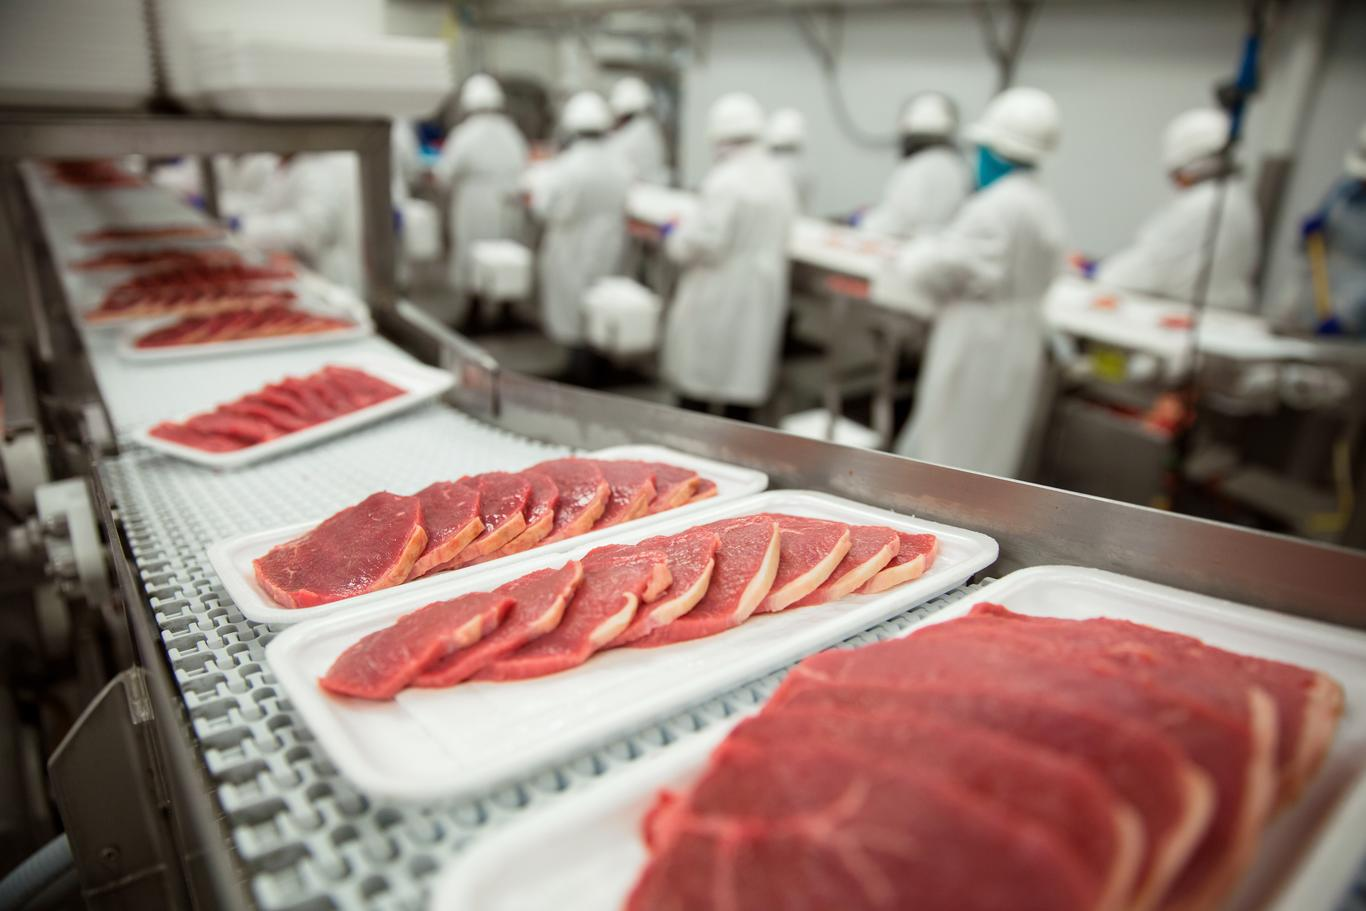 Slices of thin meat for packaging at industrial meat factory plant